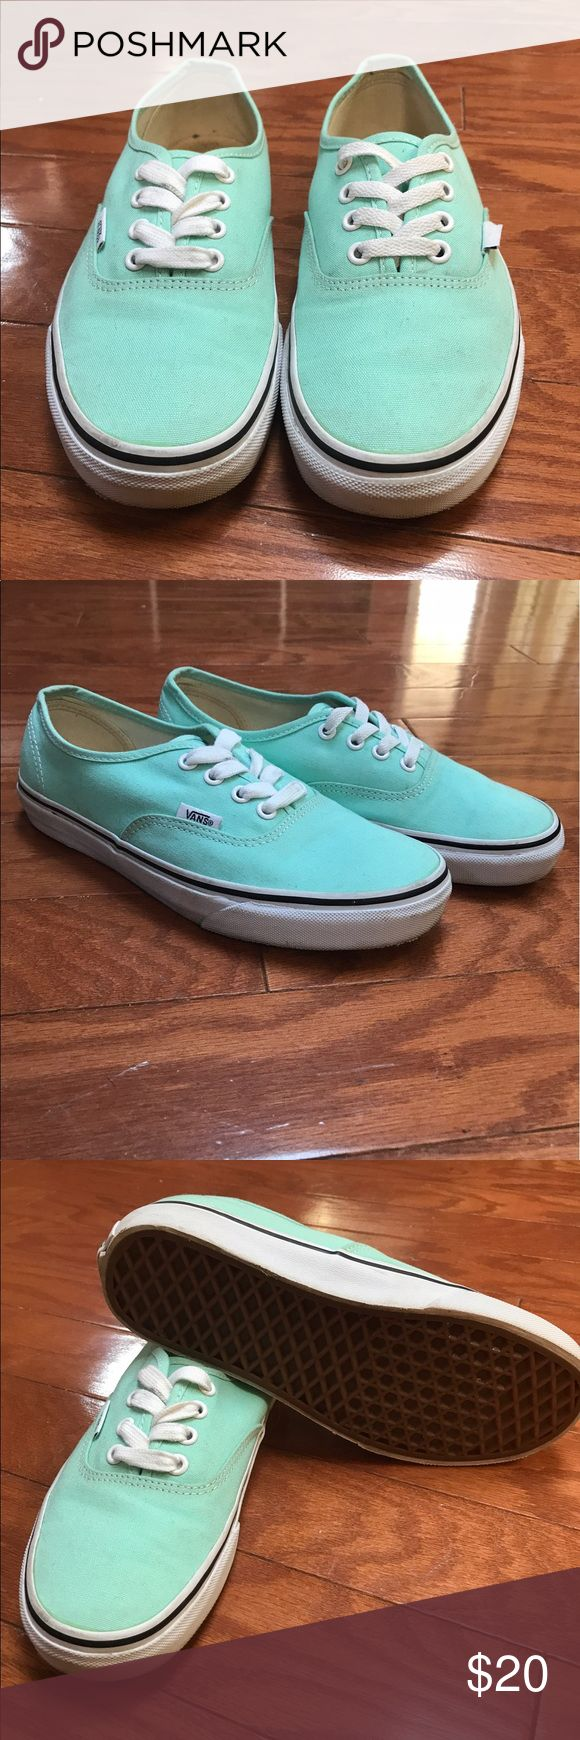 Girls Vans Tiffany Blue. Gently used. Girls Vans.  Good condition, light Tiffany blue color. Vans Shoes Sneakers